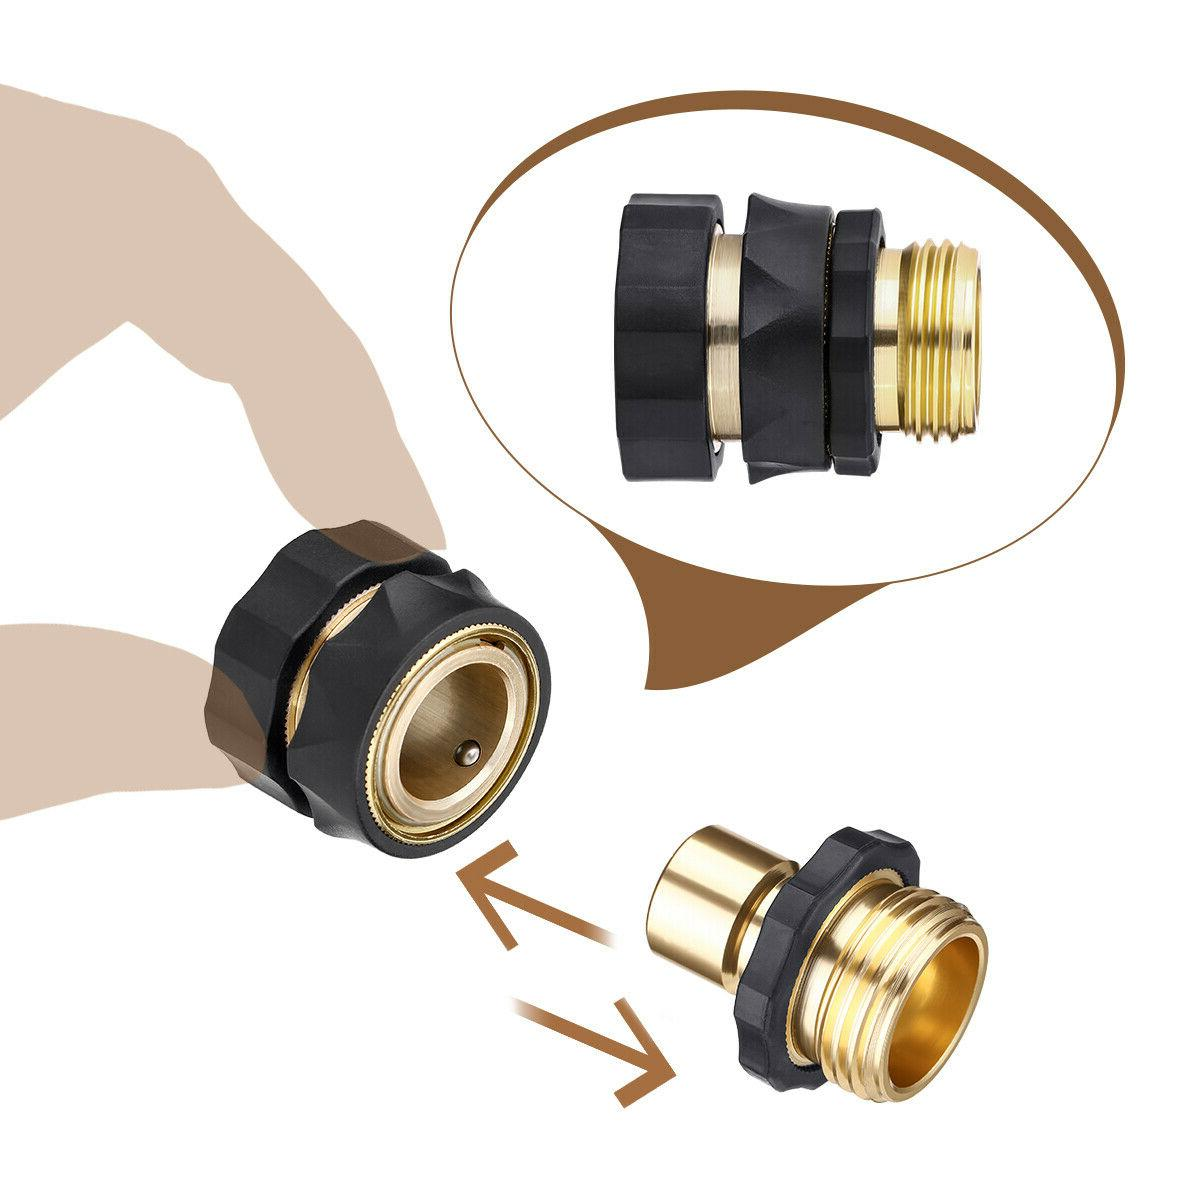 4 Garden Quick Connect Fit Brass Female Male Connector